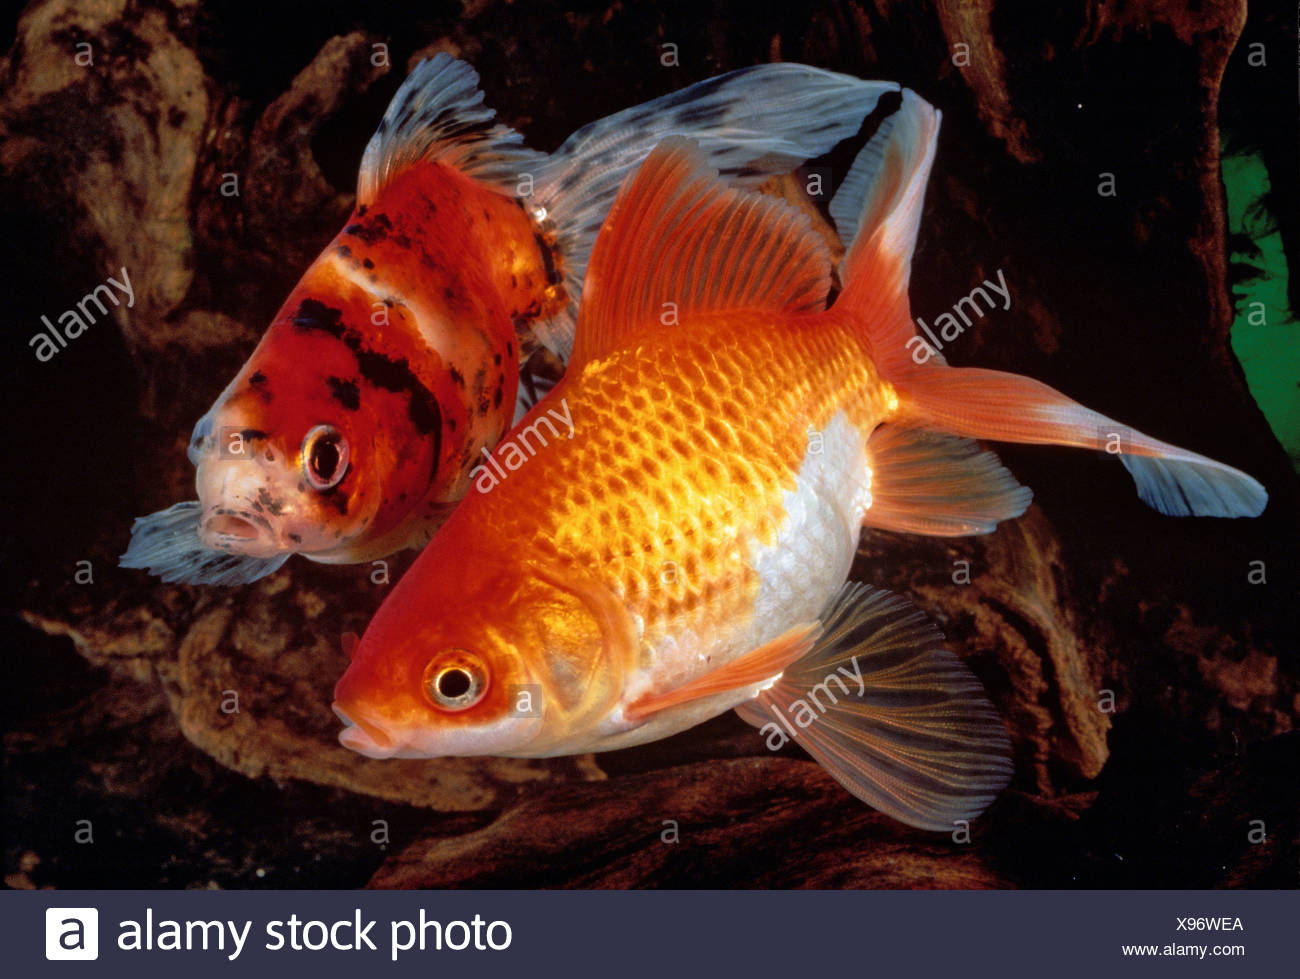 Two Ornamental Fishes Stock Photos & Two Ornamental Fishes Stock ...